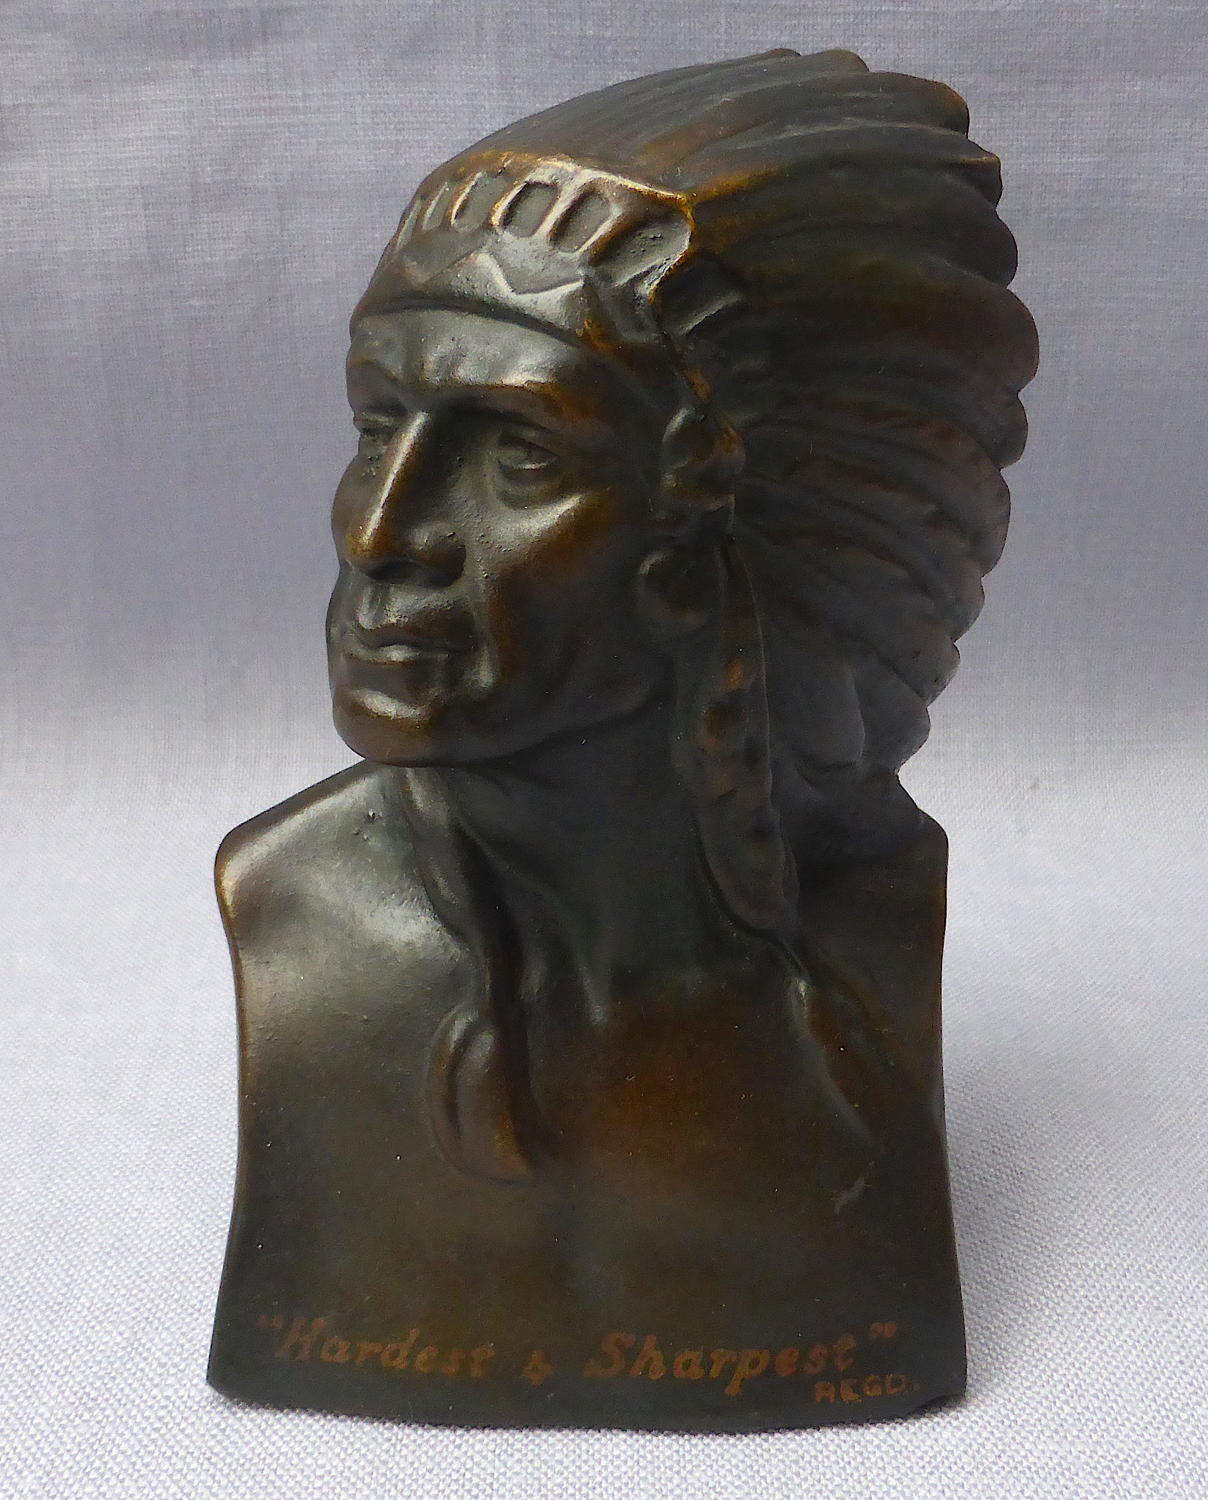 Carborundum American Indian advertising desk ornament 1920s